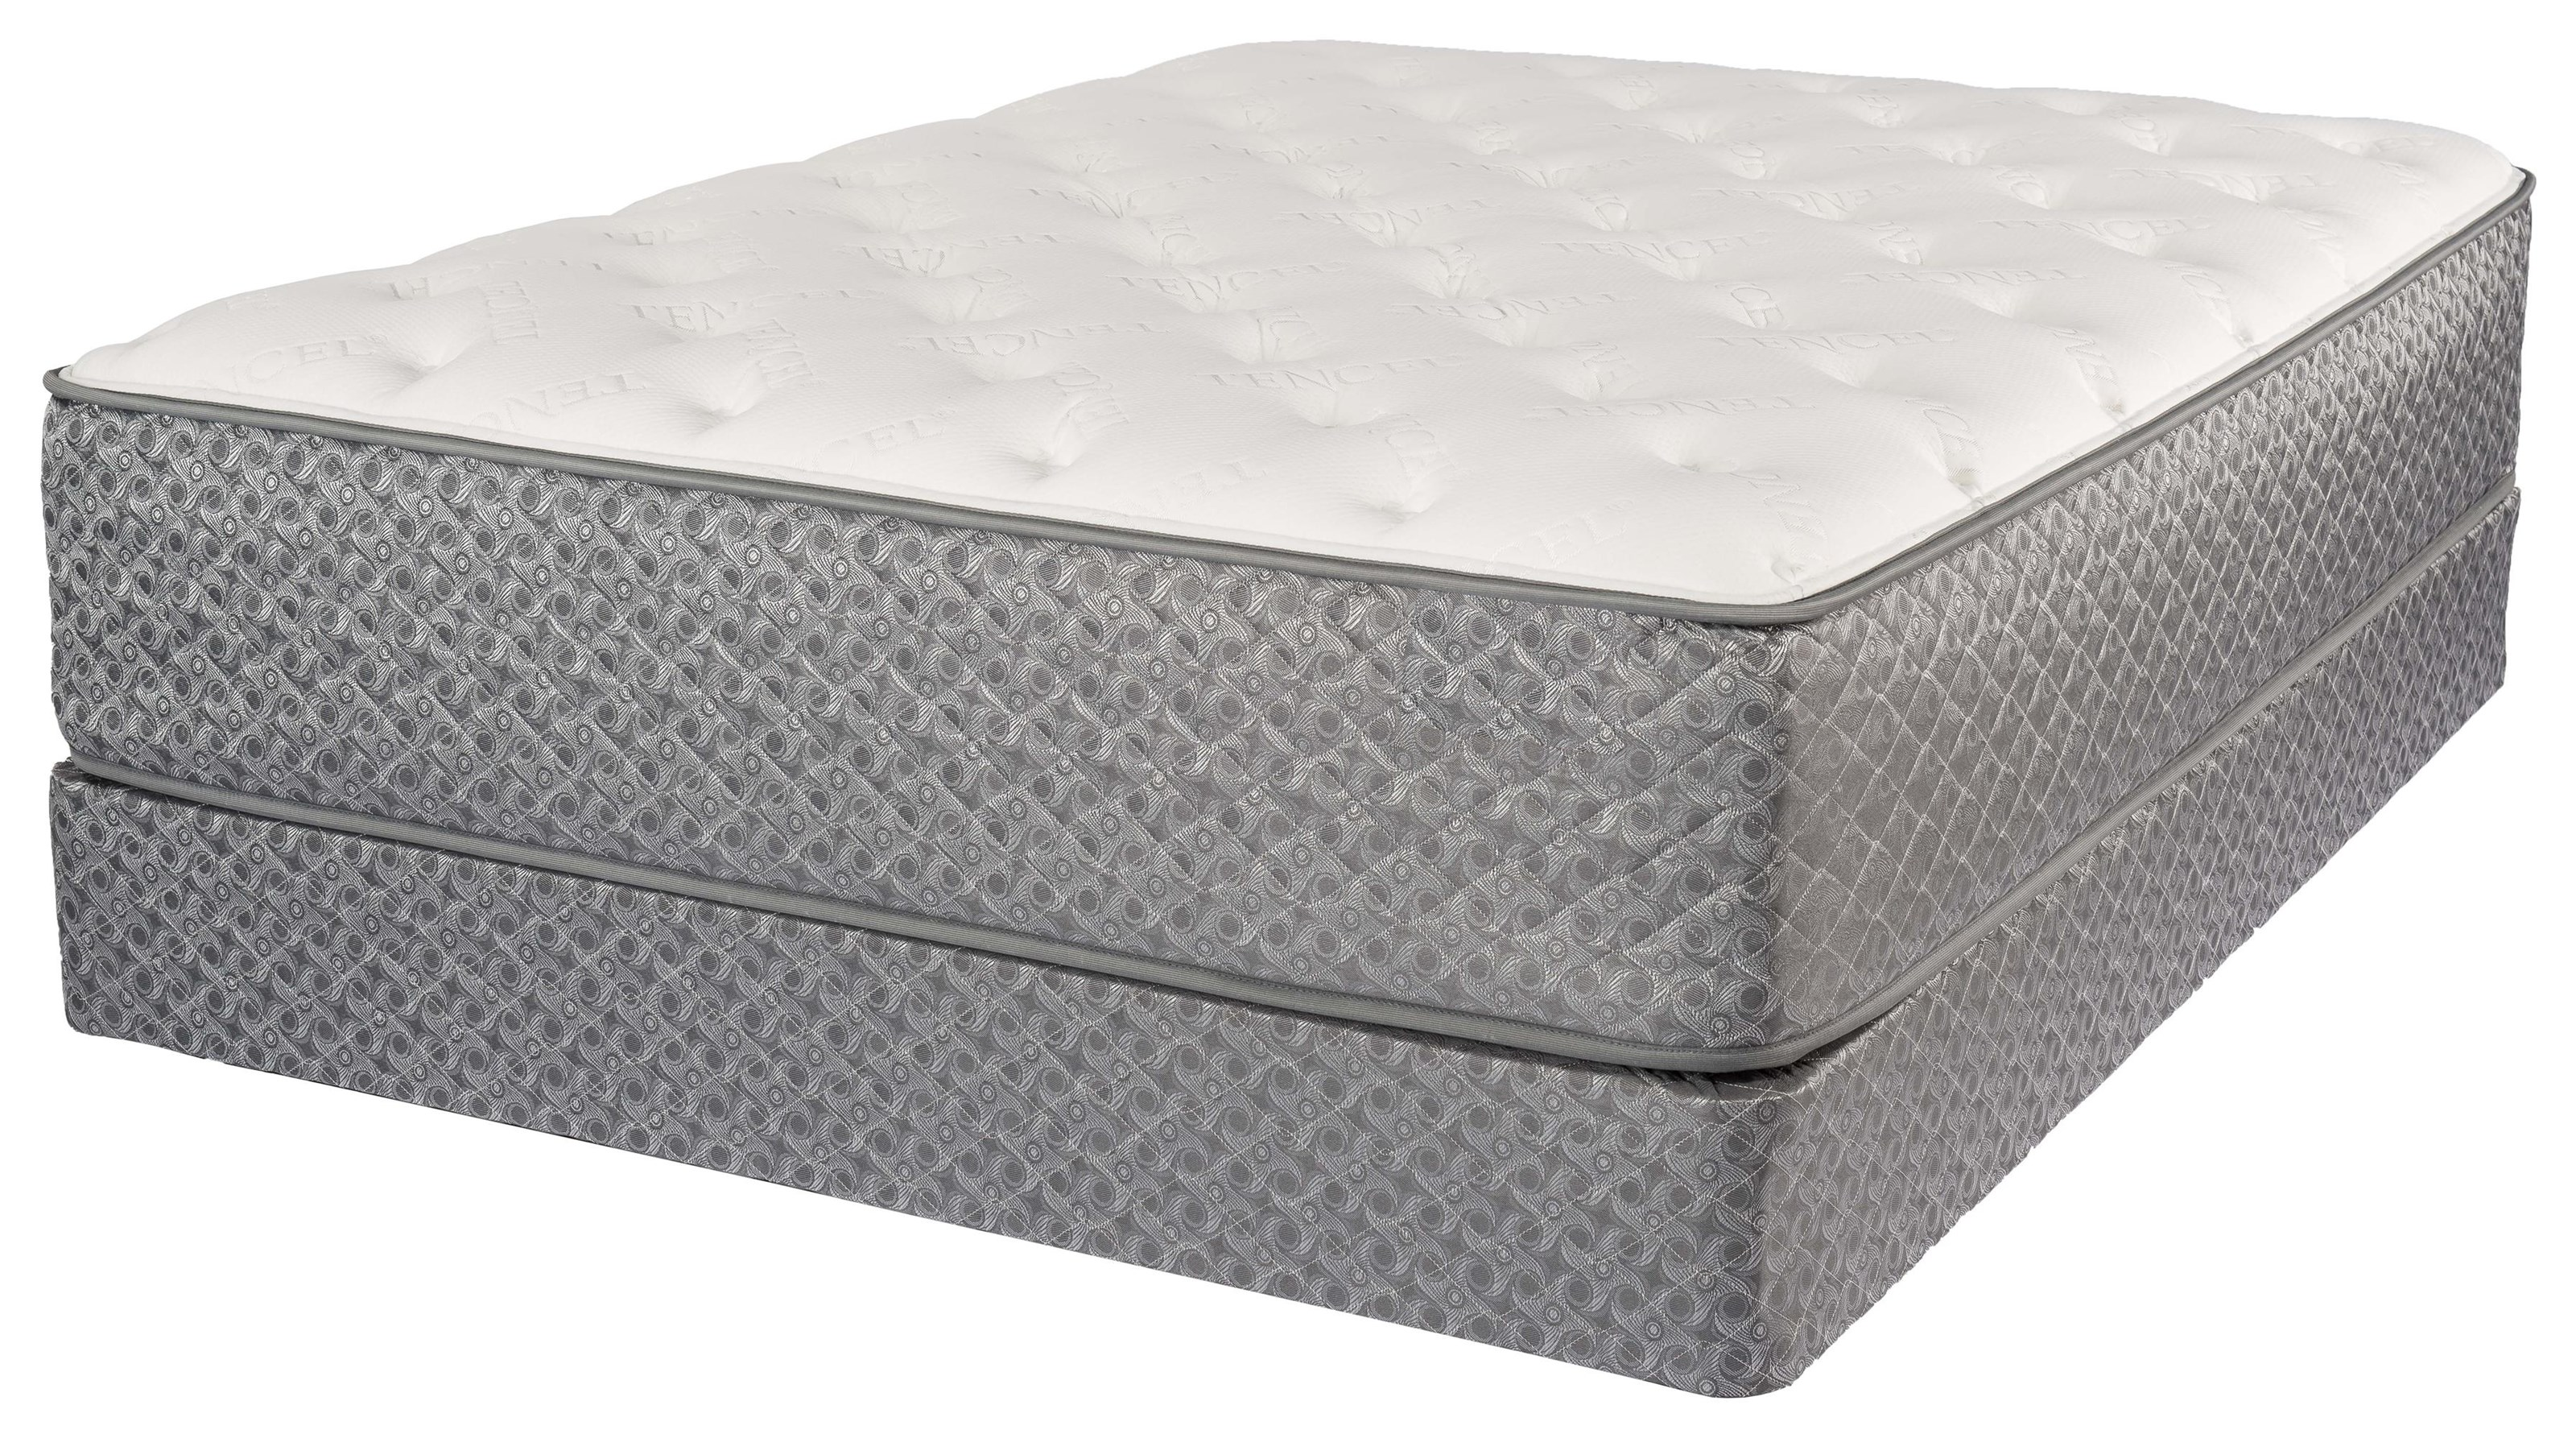 Anniversary KING ANNIVERSARY PLUSH MATTRESS by Symbol Mattress at Furniture Fair - North Carolina